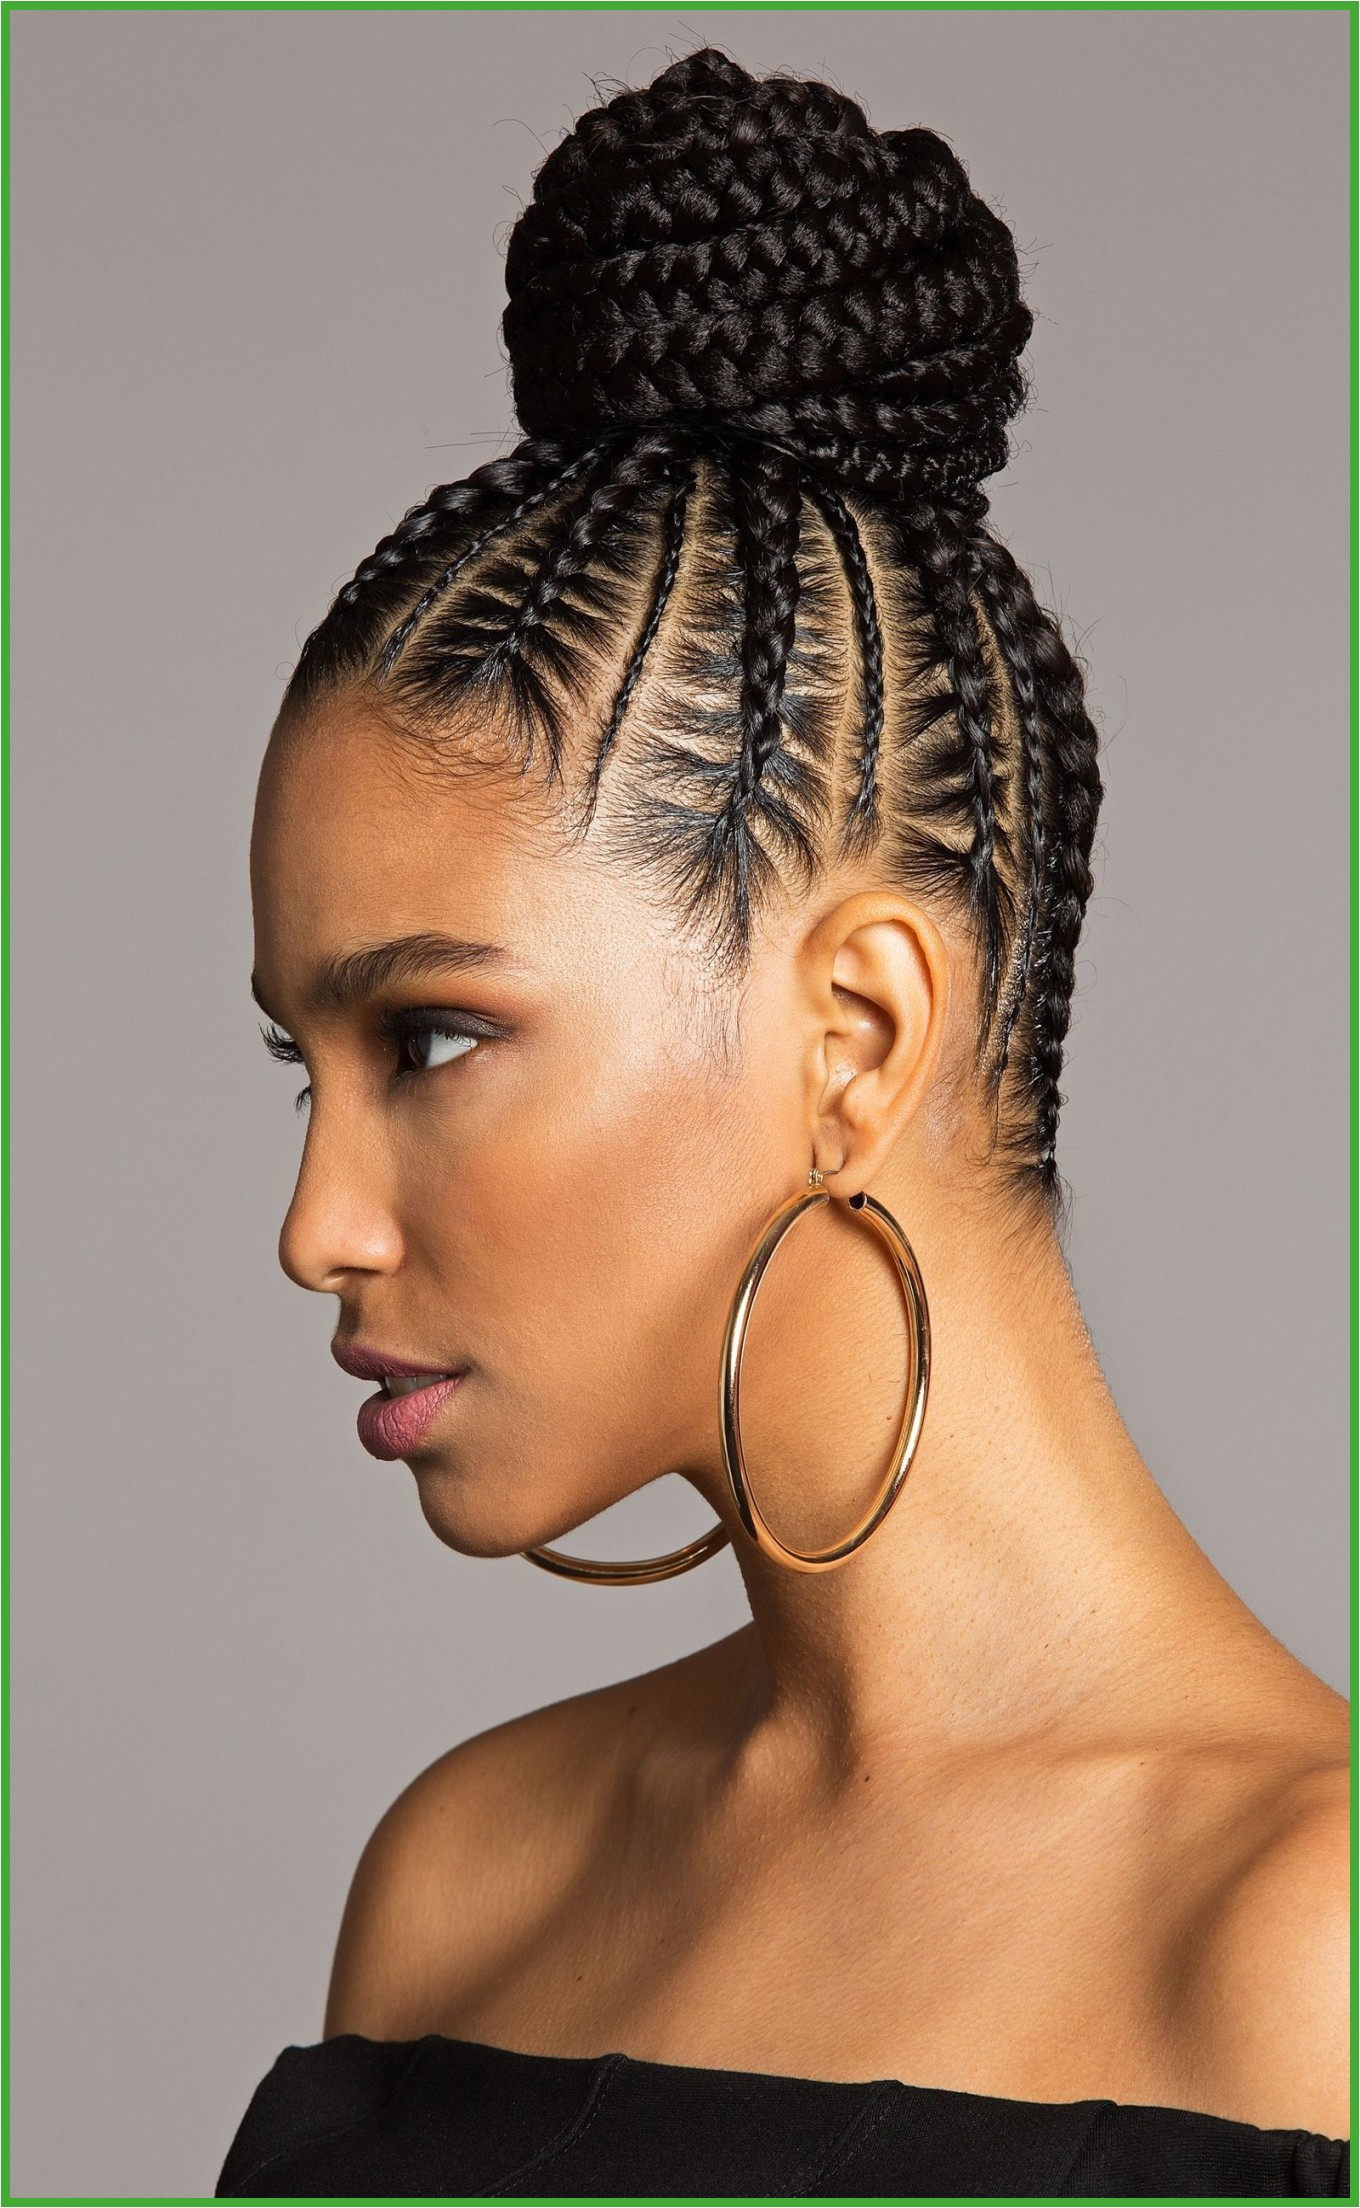 Quick Braid Styles You Re Going to Want to Wear This Bomb Braided Bun All Summer